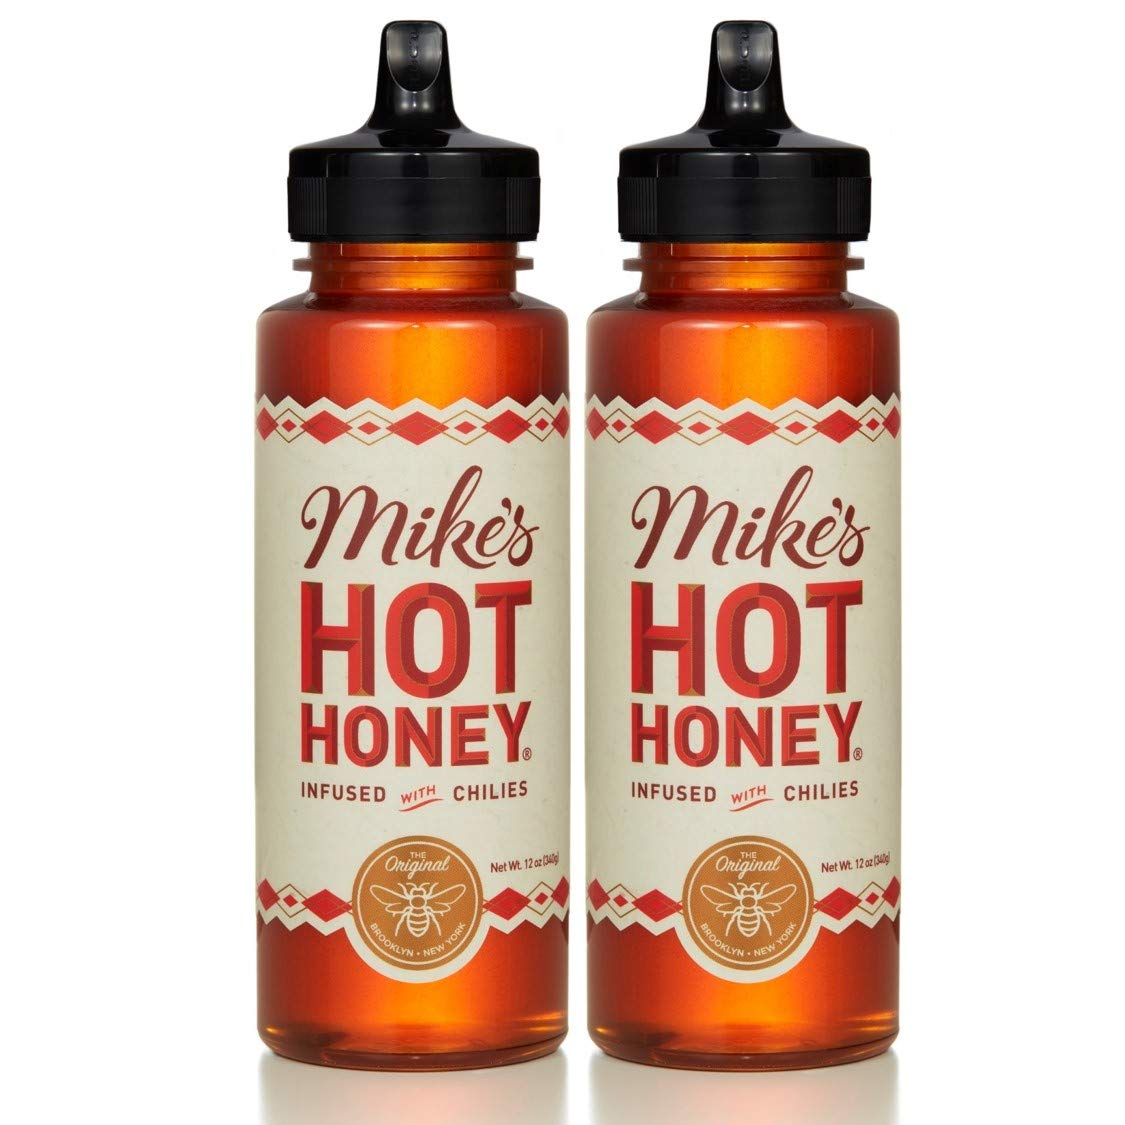 Mike's Hot Honey 12 oz. (2 Pack) | Spicy & Sweet | Sustainably Sourced USA Honey | Paleo & Gluten-Free | Perfect on Pizza, BBQ, Veggies, & More!